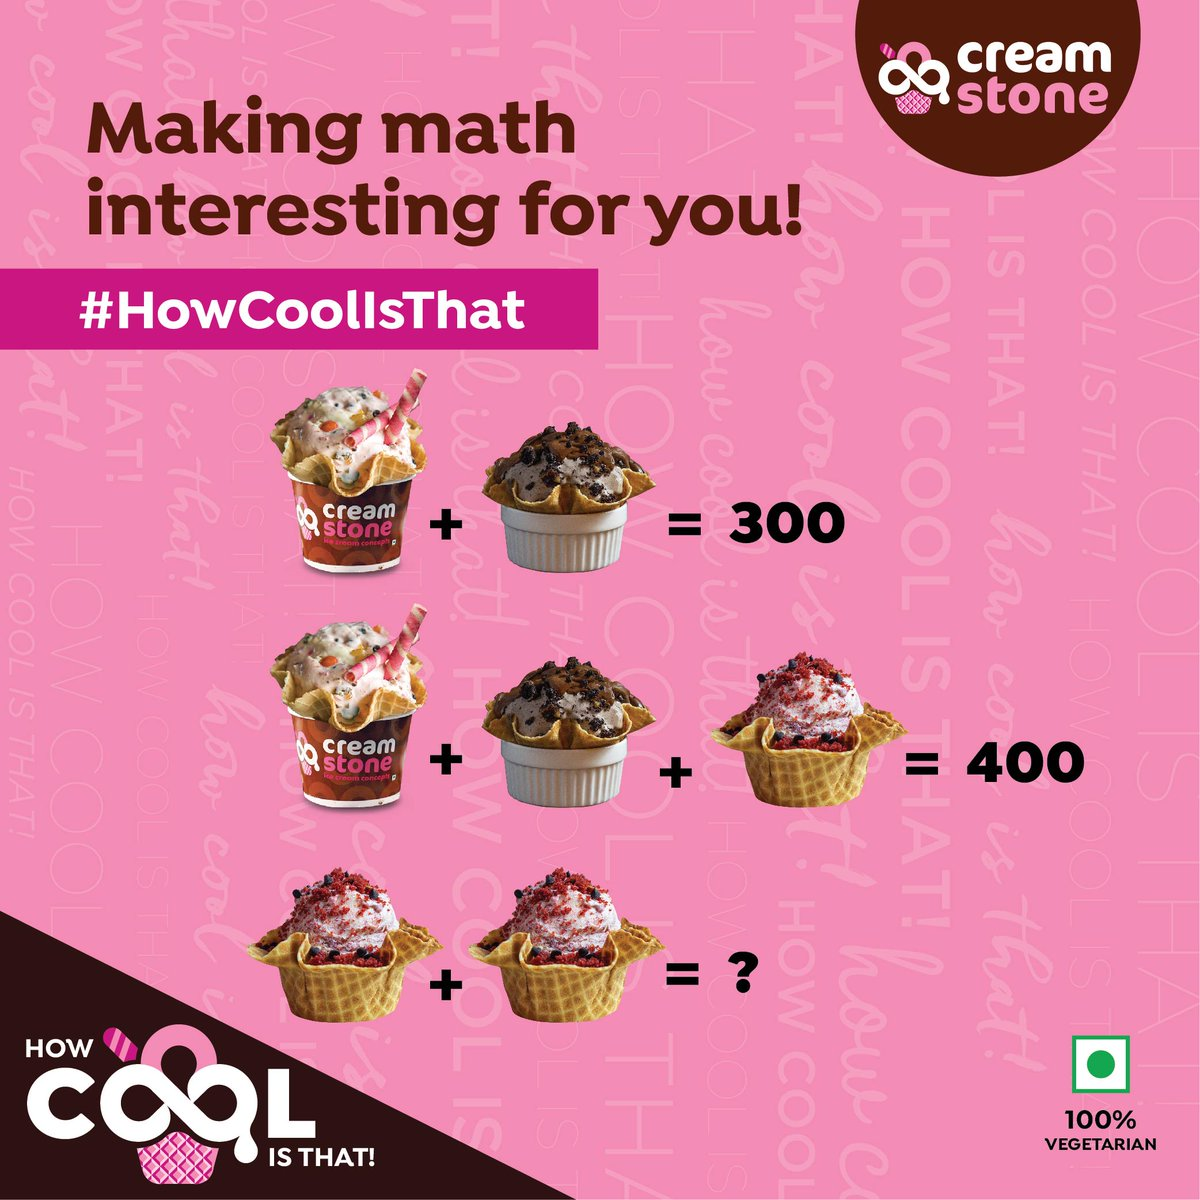 Stay cool &amp; smart this season by eating and solving this interesting puzzle! #creamstone #howcoolisthat #coolandsmart #comment #like #share #tagafriend <br>http://pic.twitter.com/J7GSVY5DSE